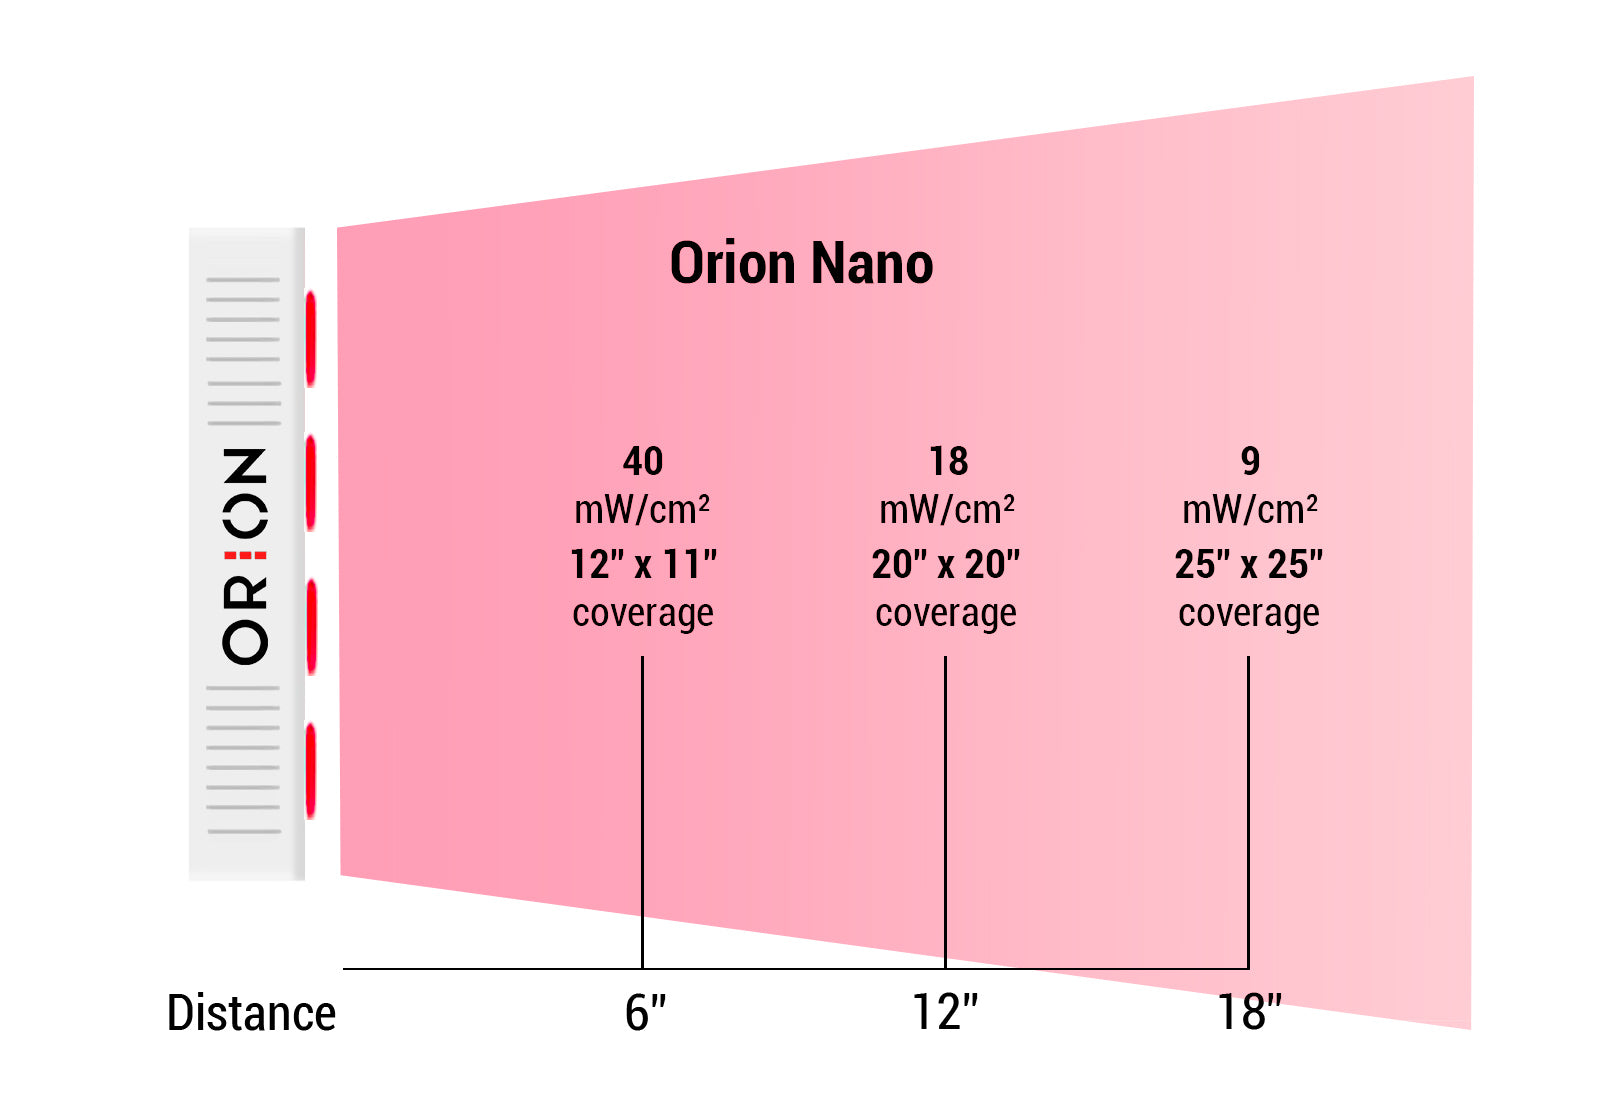 Orion Nano Irradiance Levels | Orion Red Light Therapy